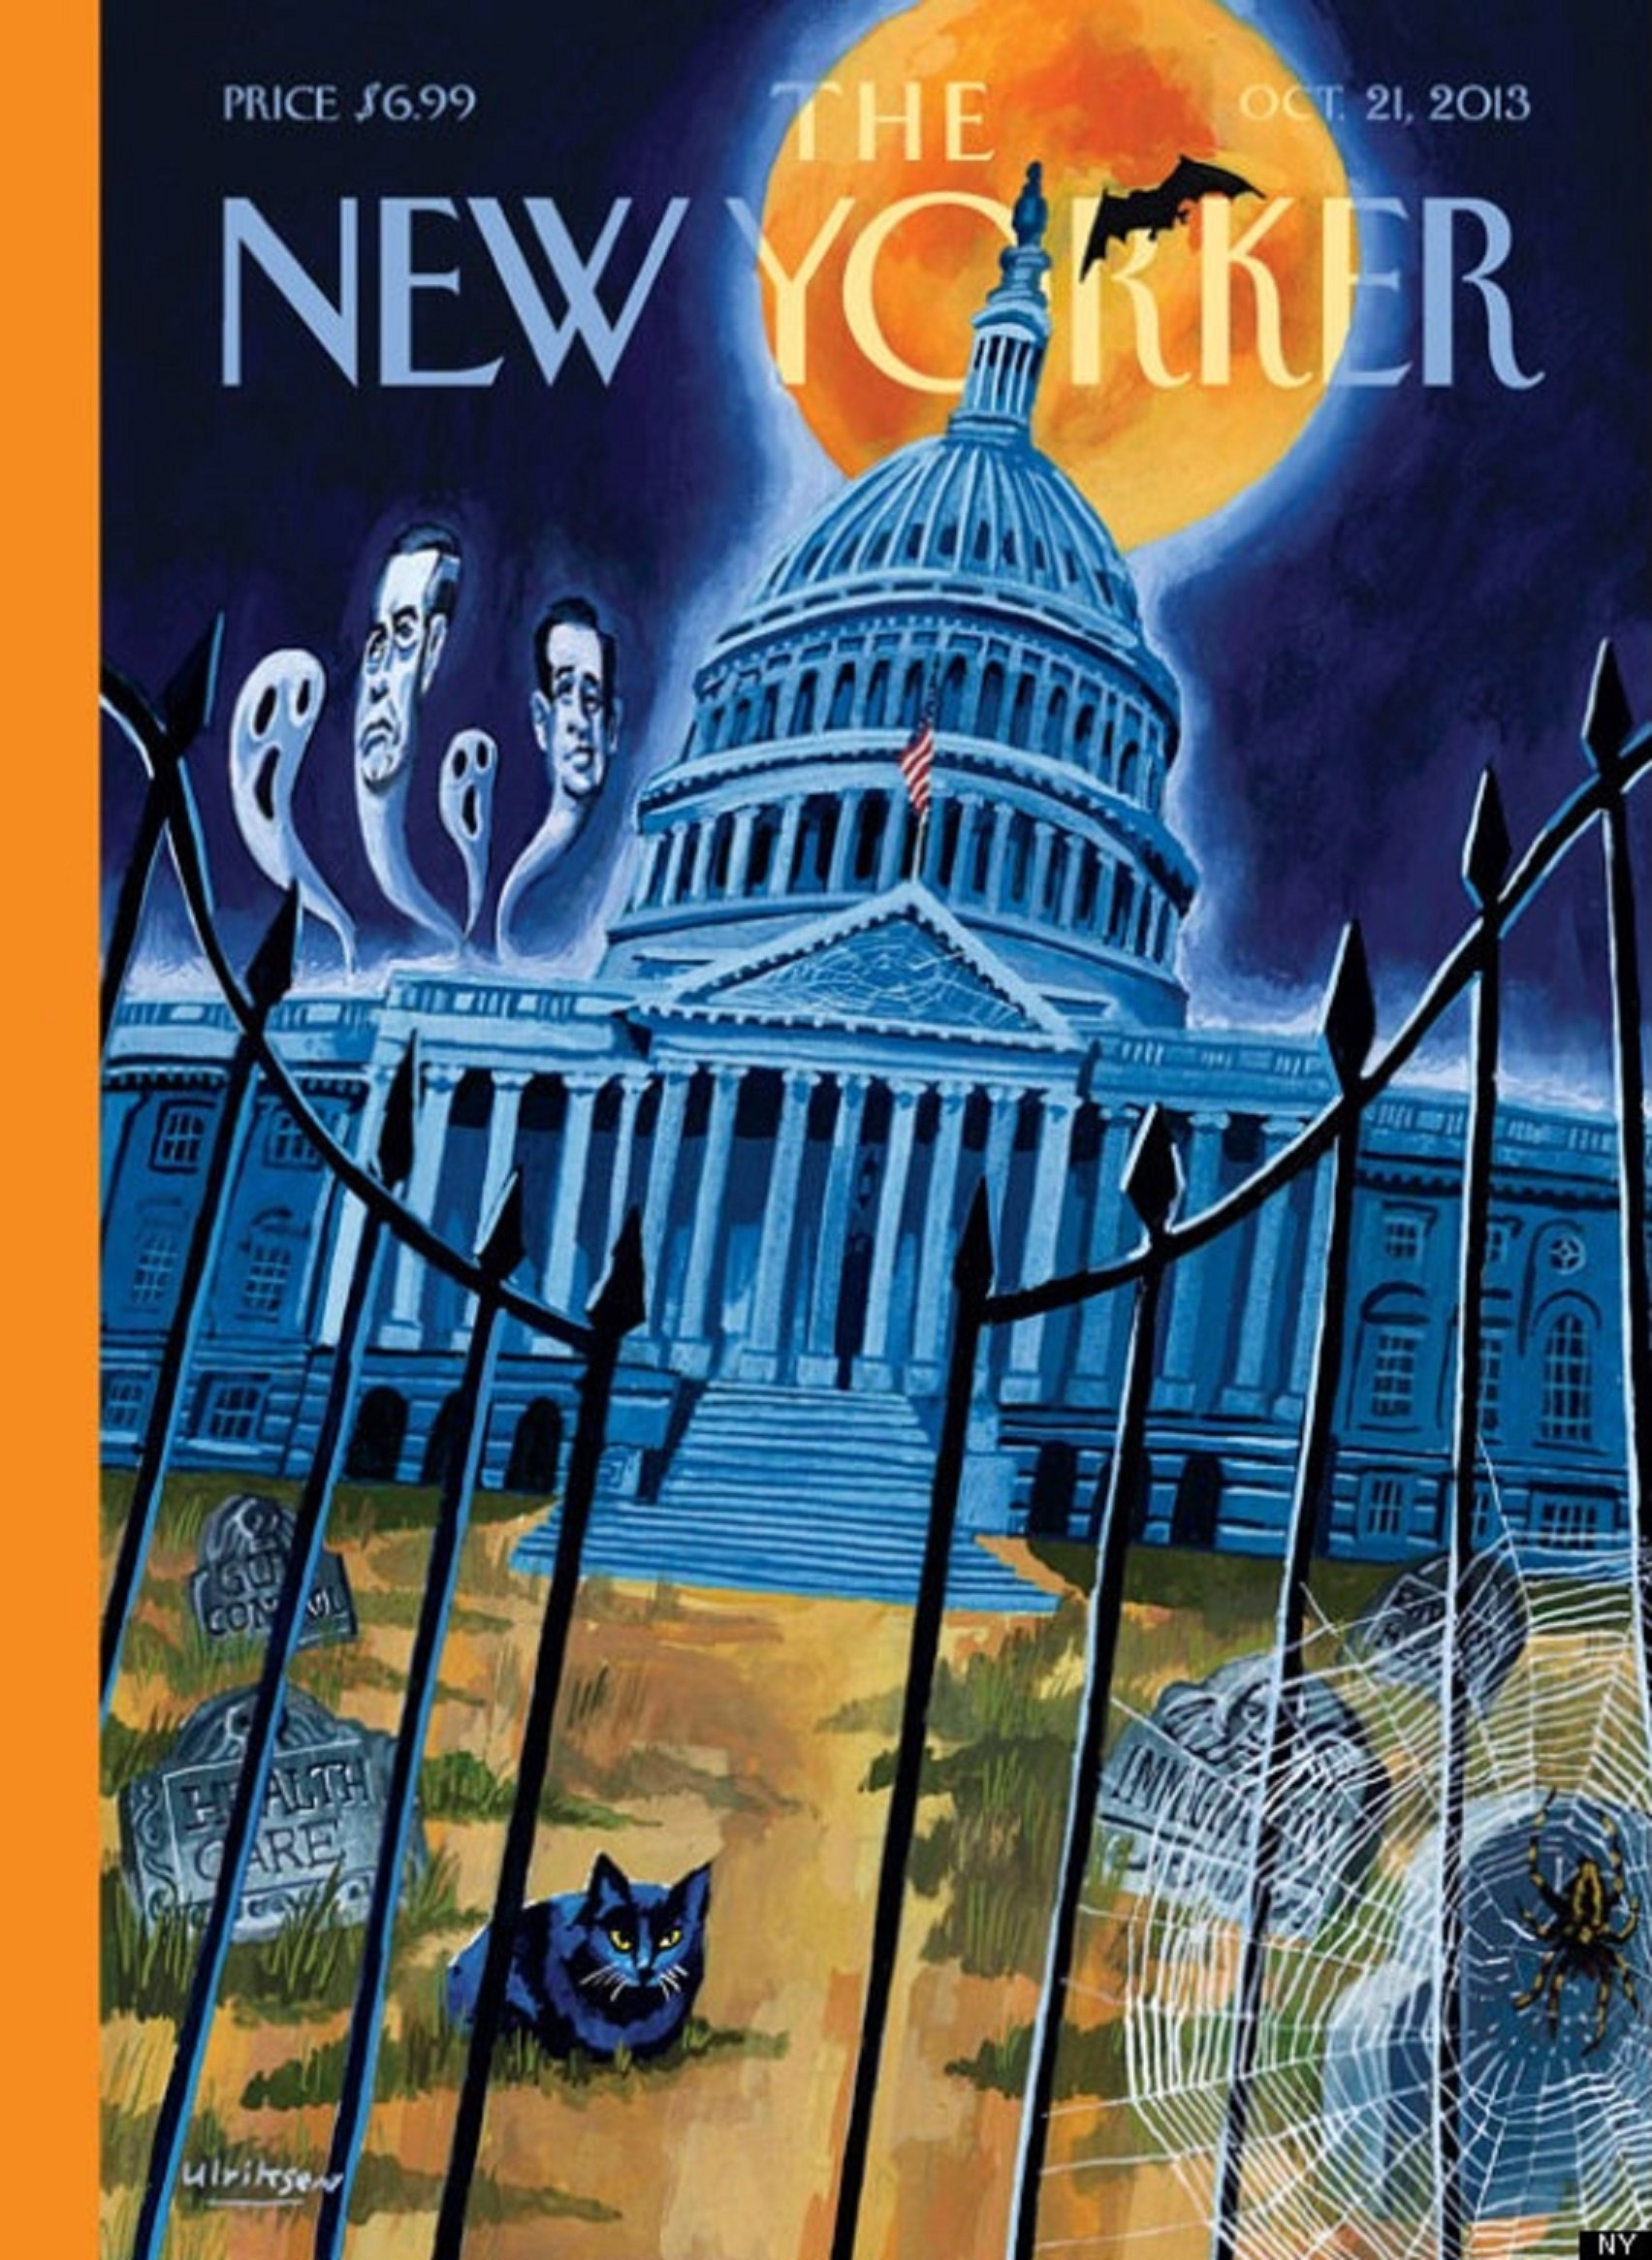 The New Yorker Magazine Cover: The Capital as a Haunted ...